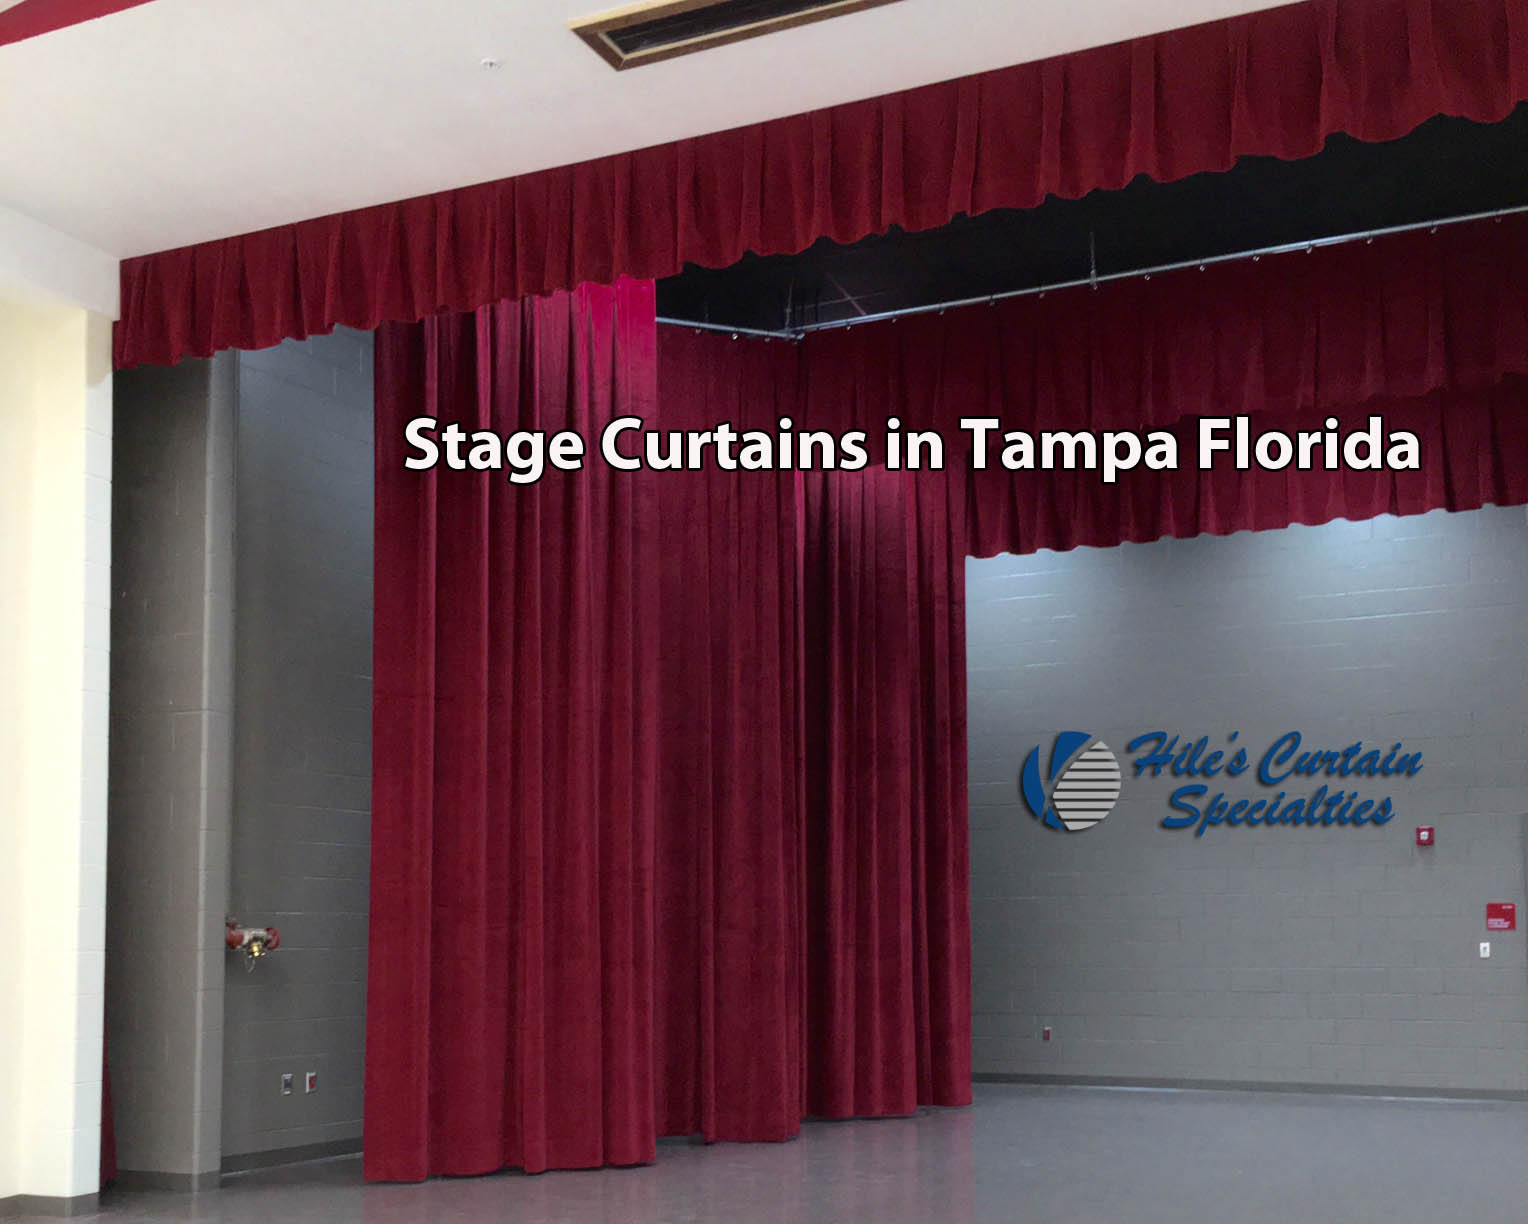 Stage Curtains in Tampa